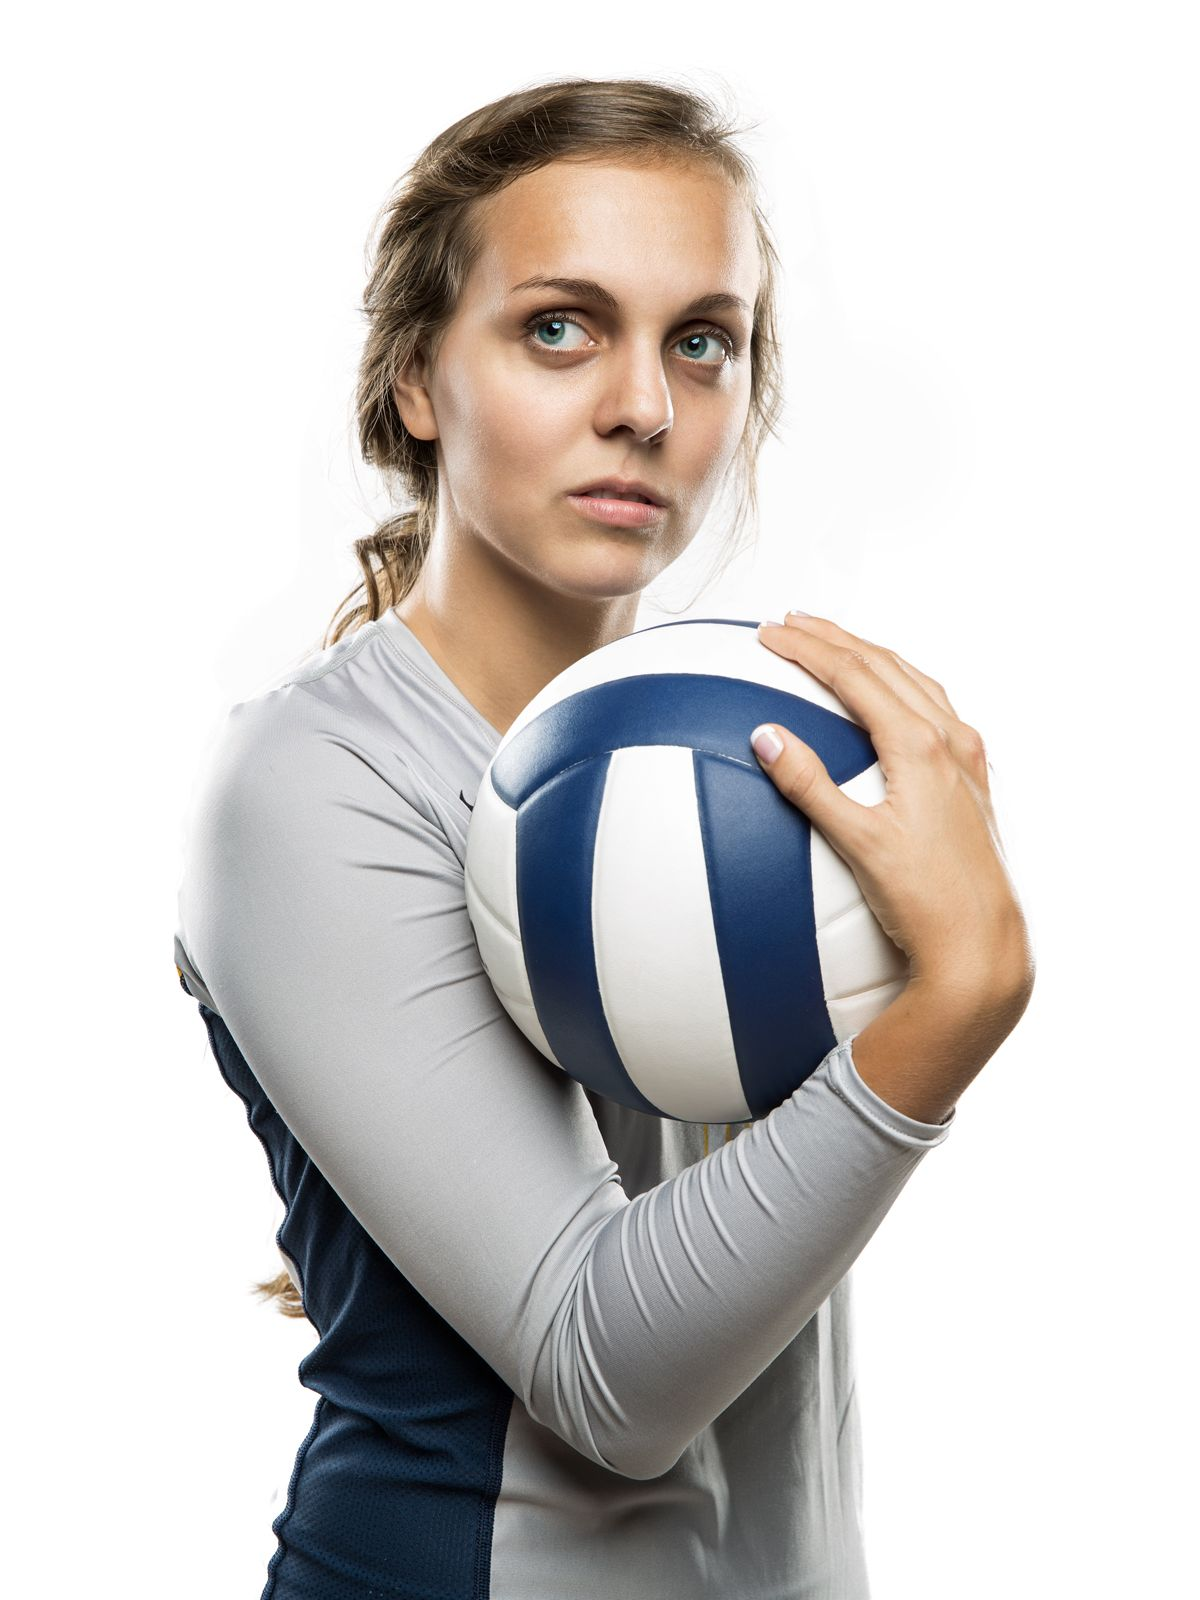 Sage 01 Z7a4500 Sports Photography Volleyball Sports Fashion Illustration